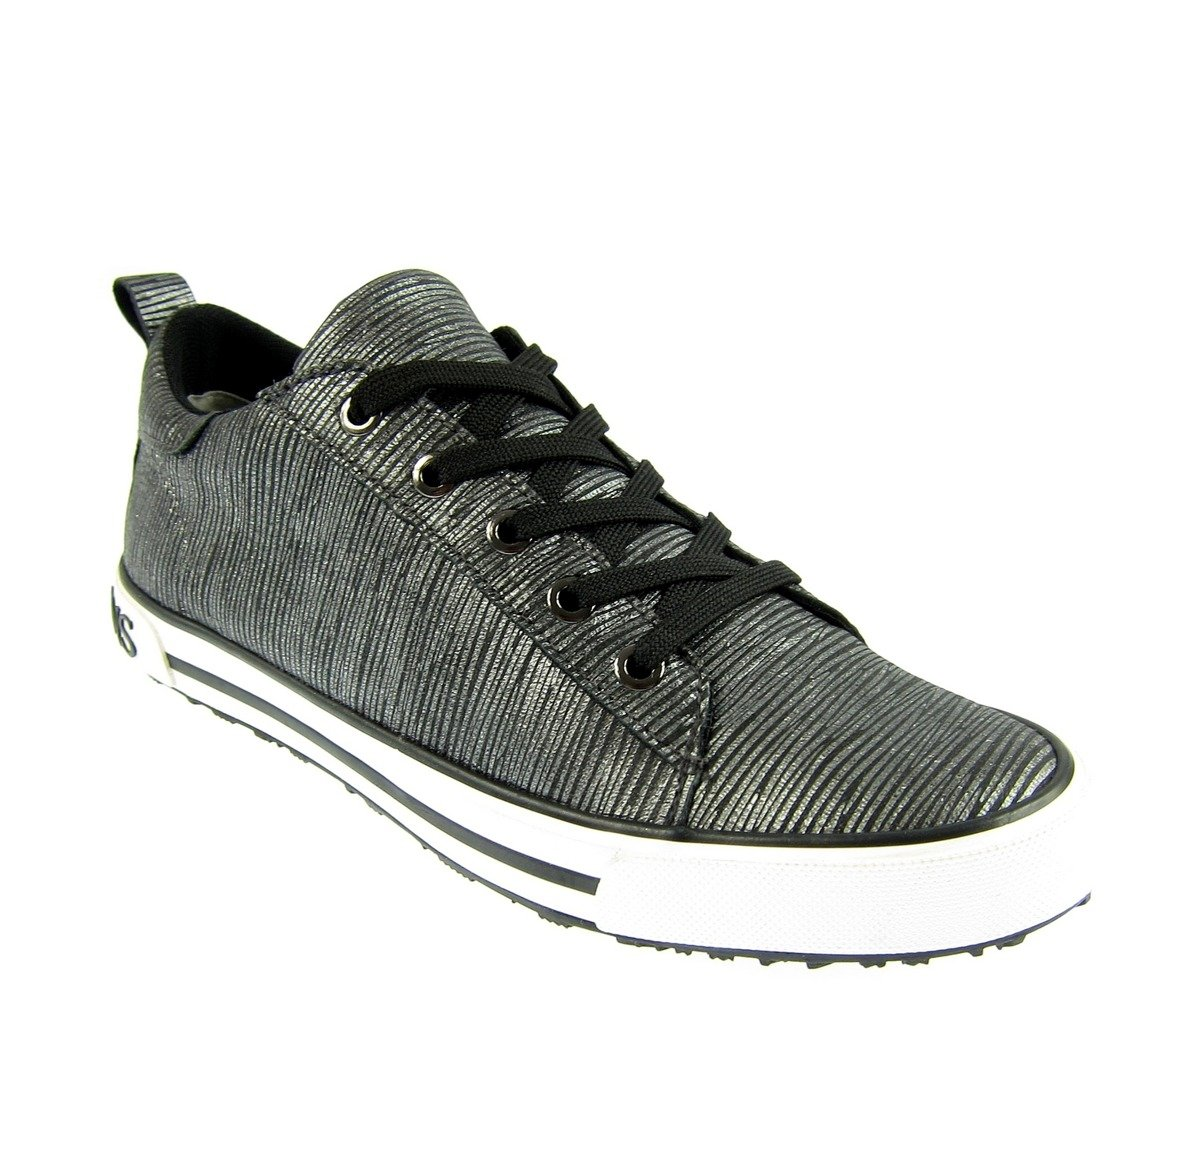 ... ARMANI JEANS 6AHOC Damen Women Sneaker Schuhe Shoes Anthrazit Click to  zoom ... 249a3190de